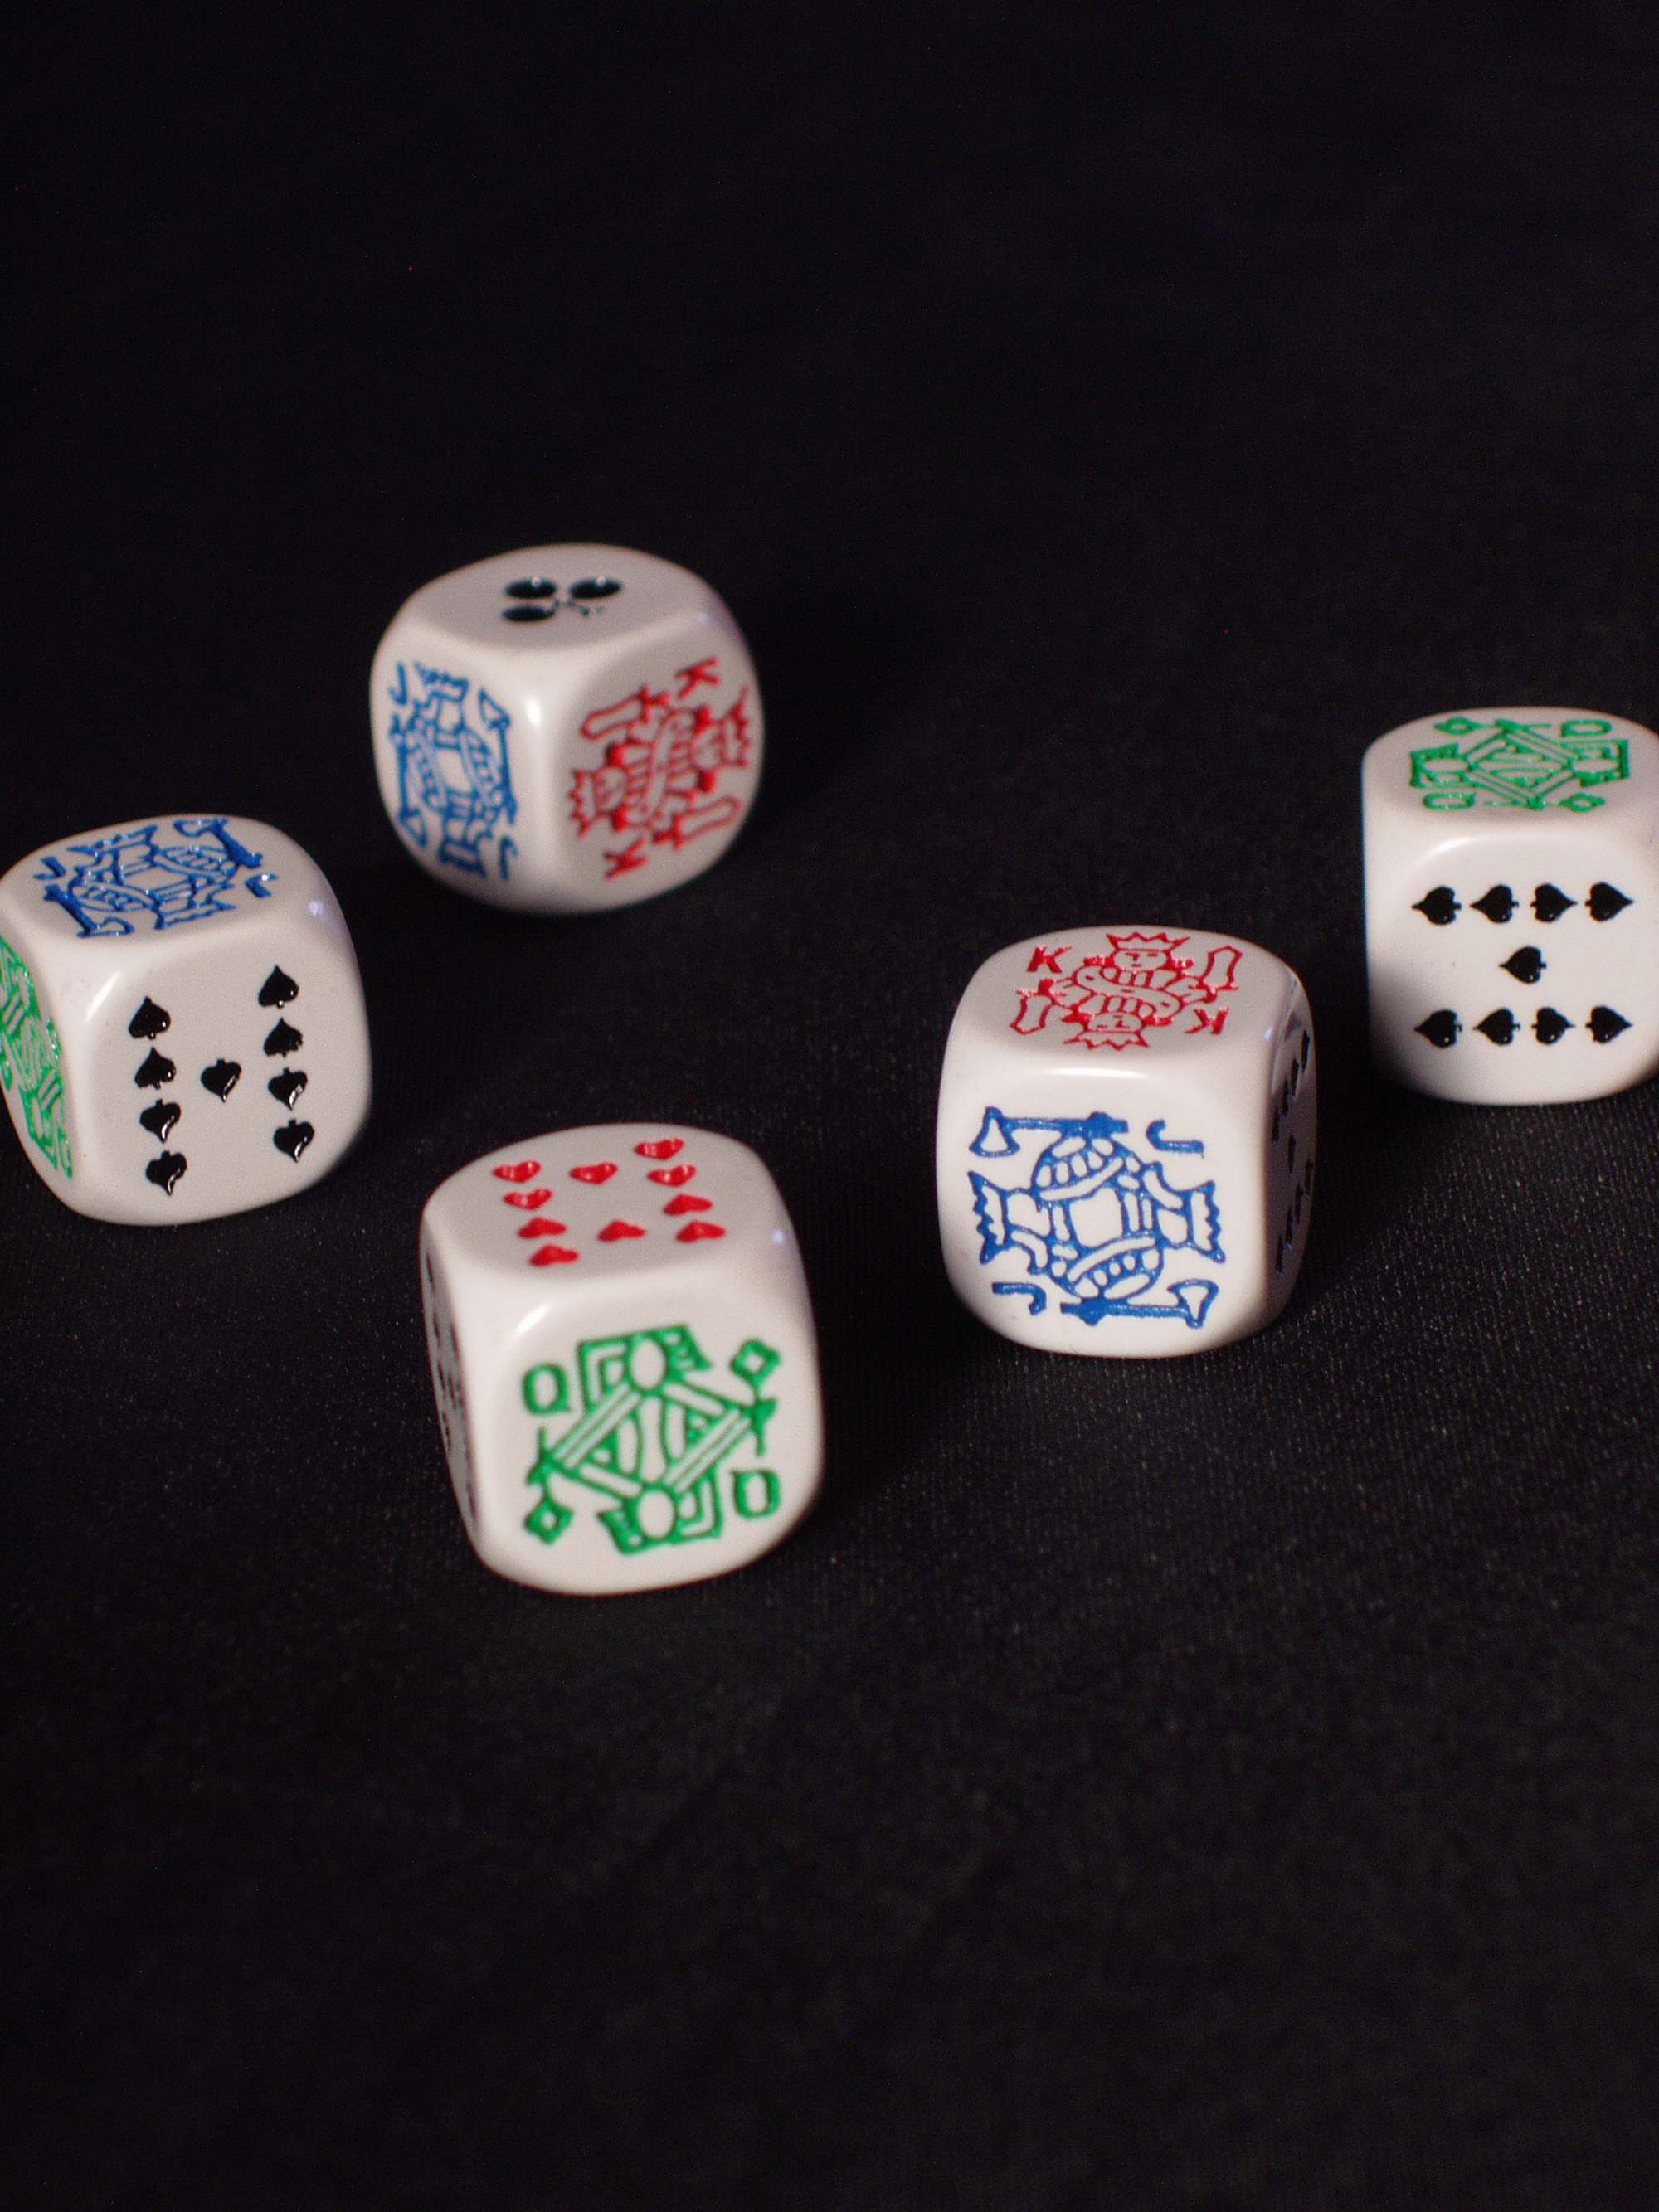 World's Best Dice Games - Bed Bath & Beyond